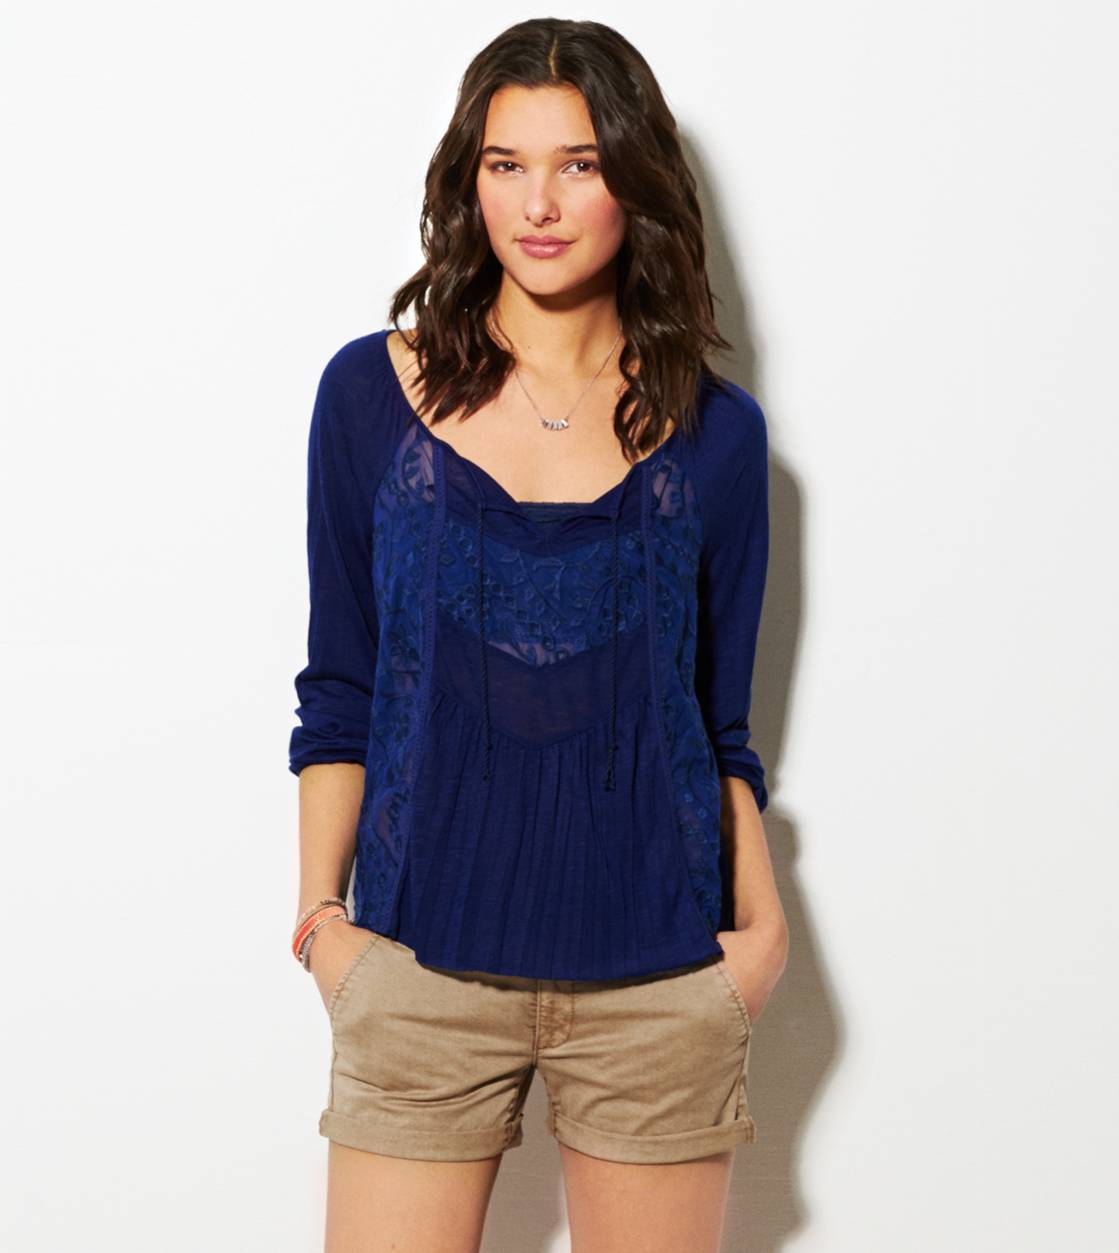 Evening Blue AE Mixed Lace Boho T-Shirt